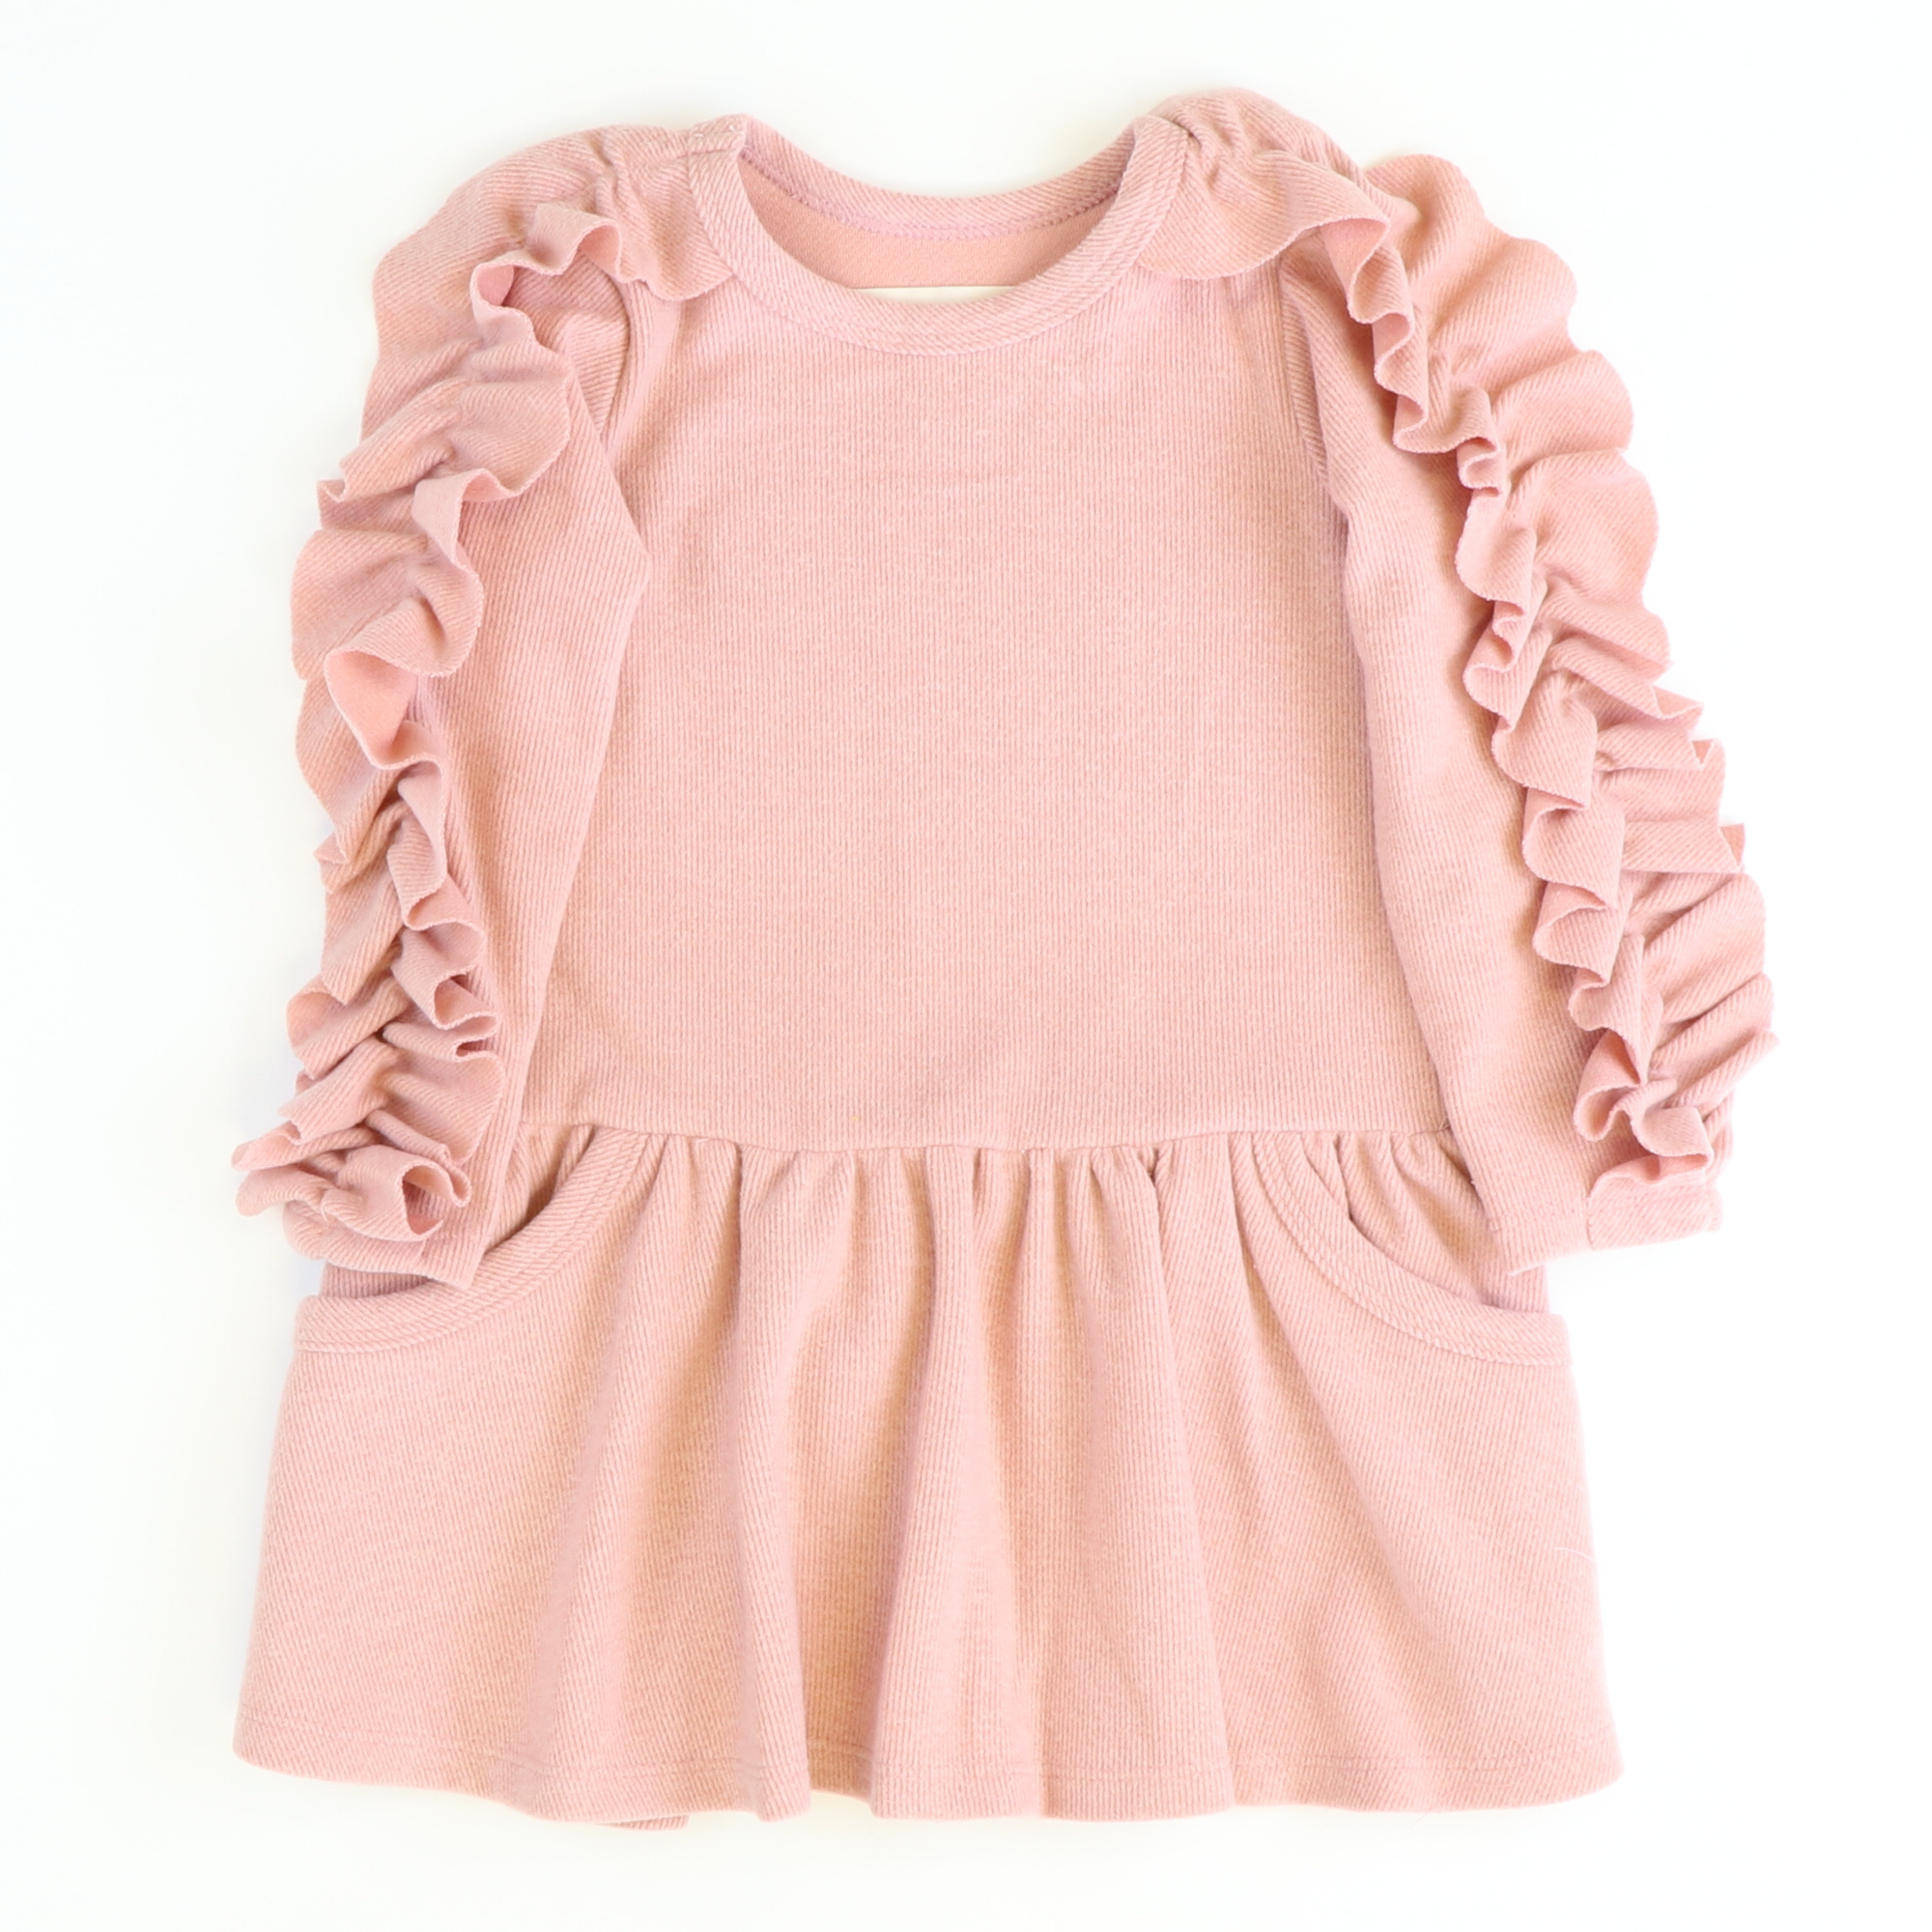 Blush Ruffle Sleeve Dress